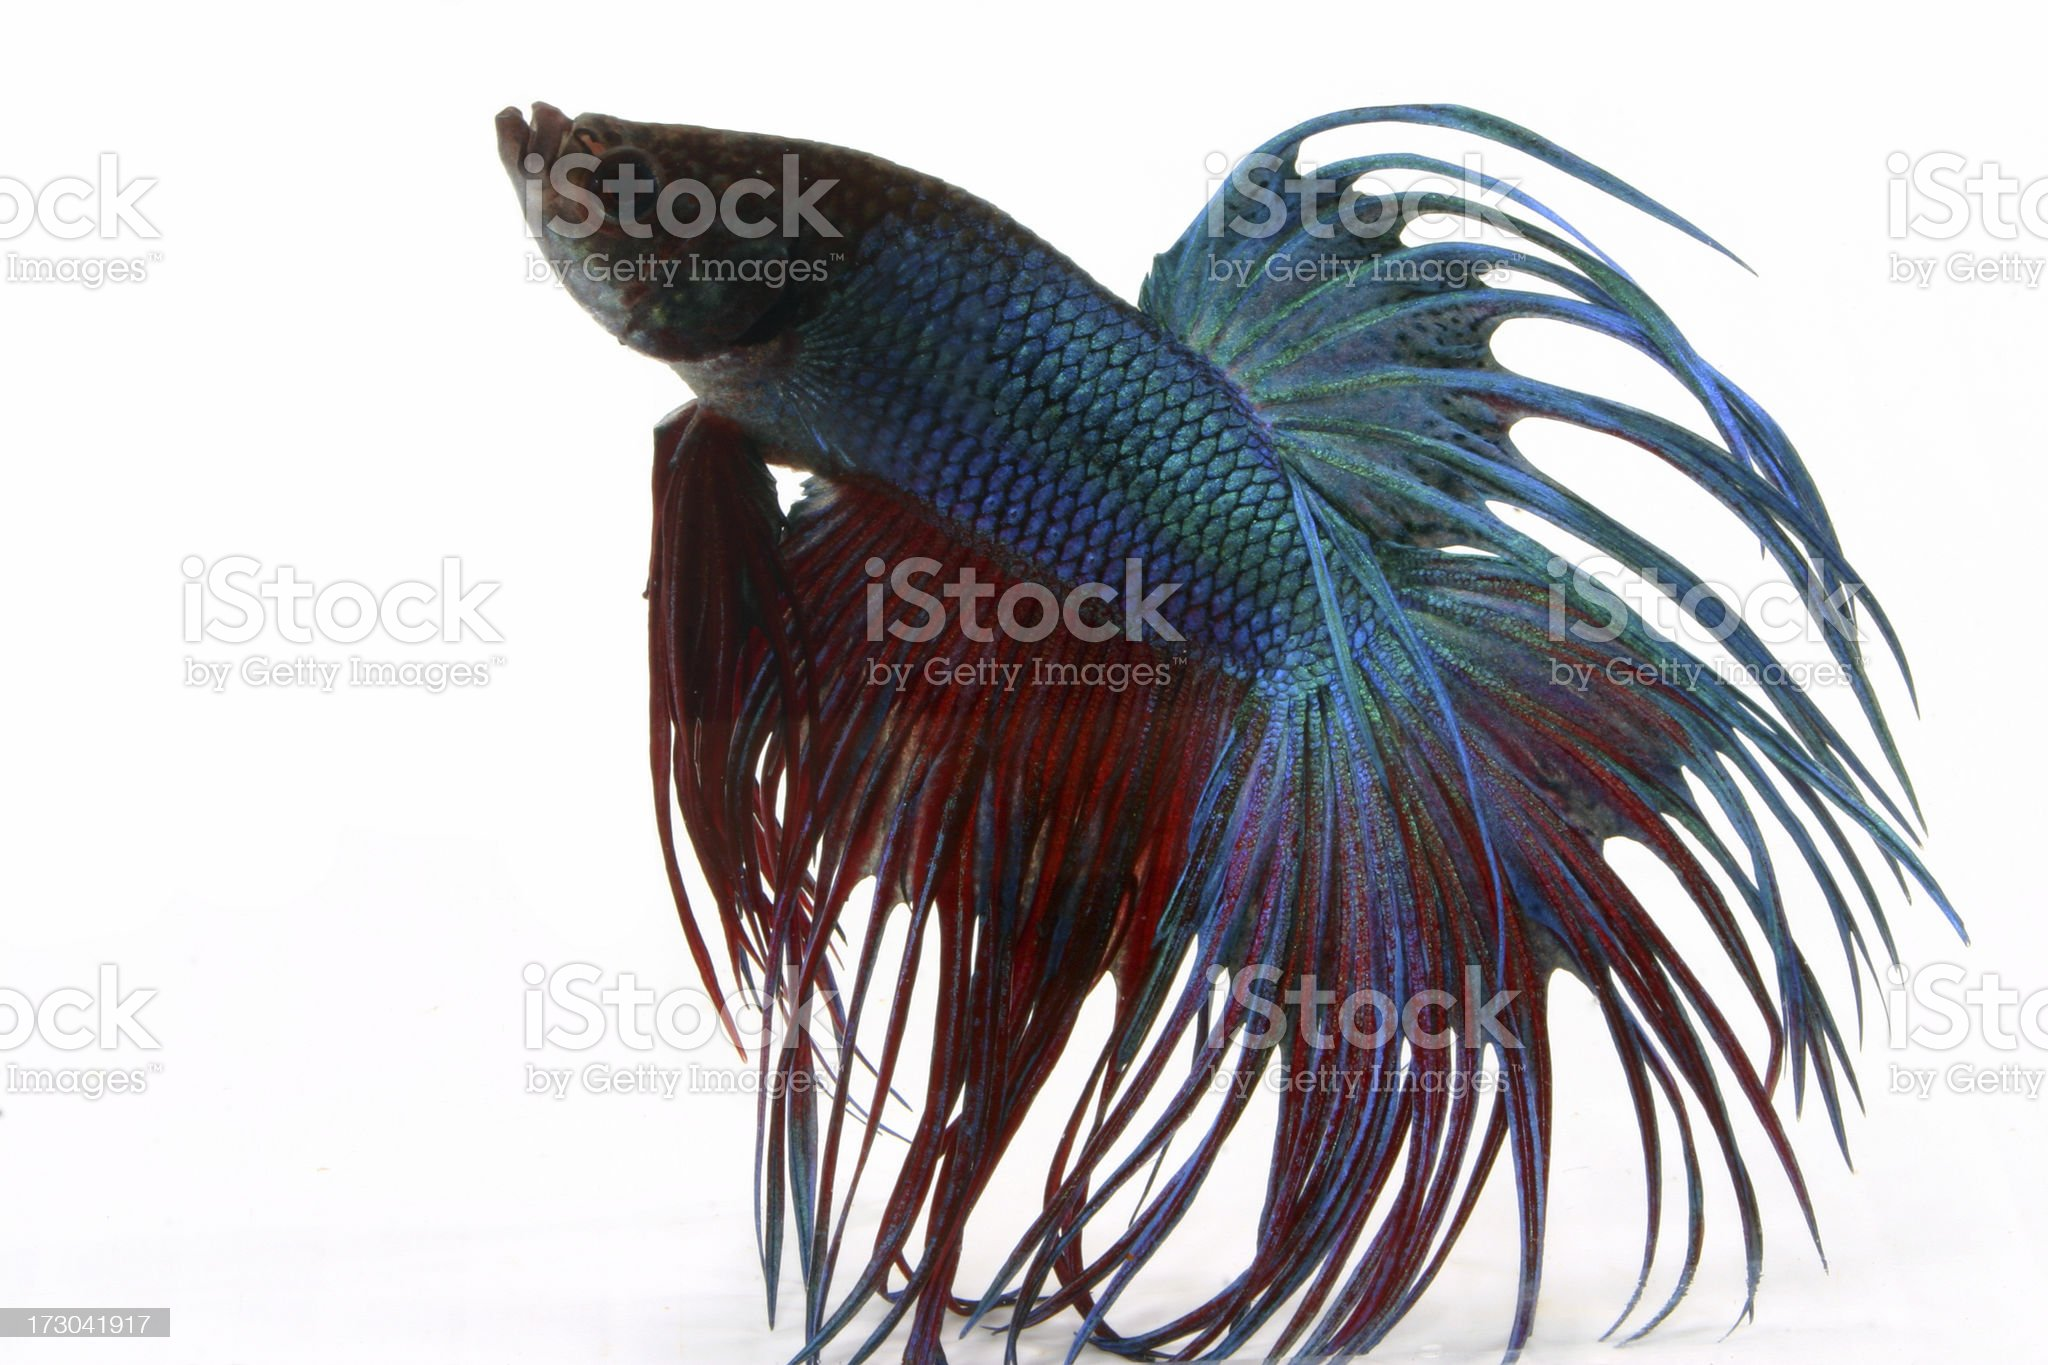 crowntail betta royalty-free stock photo